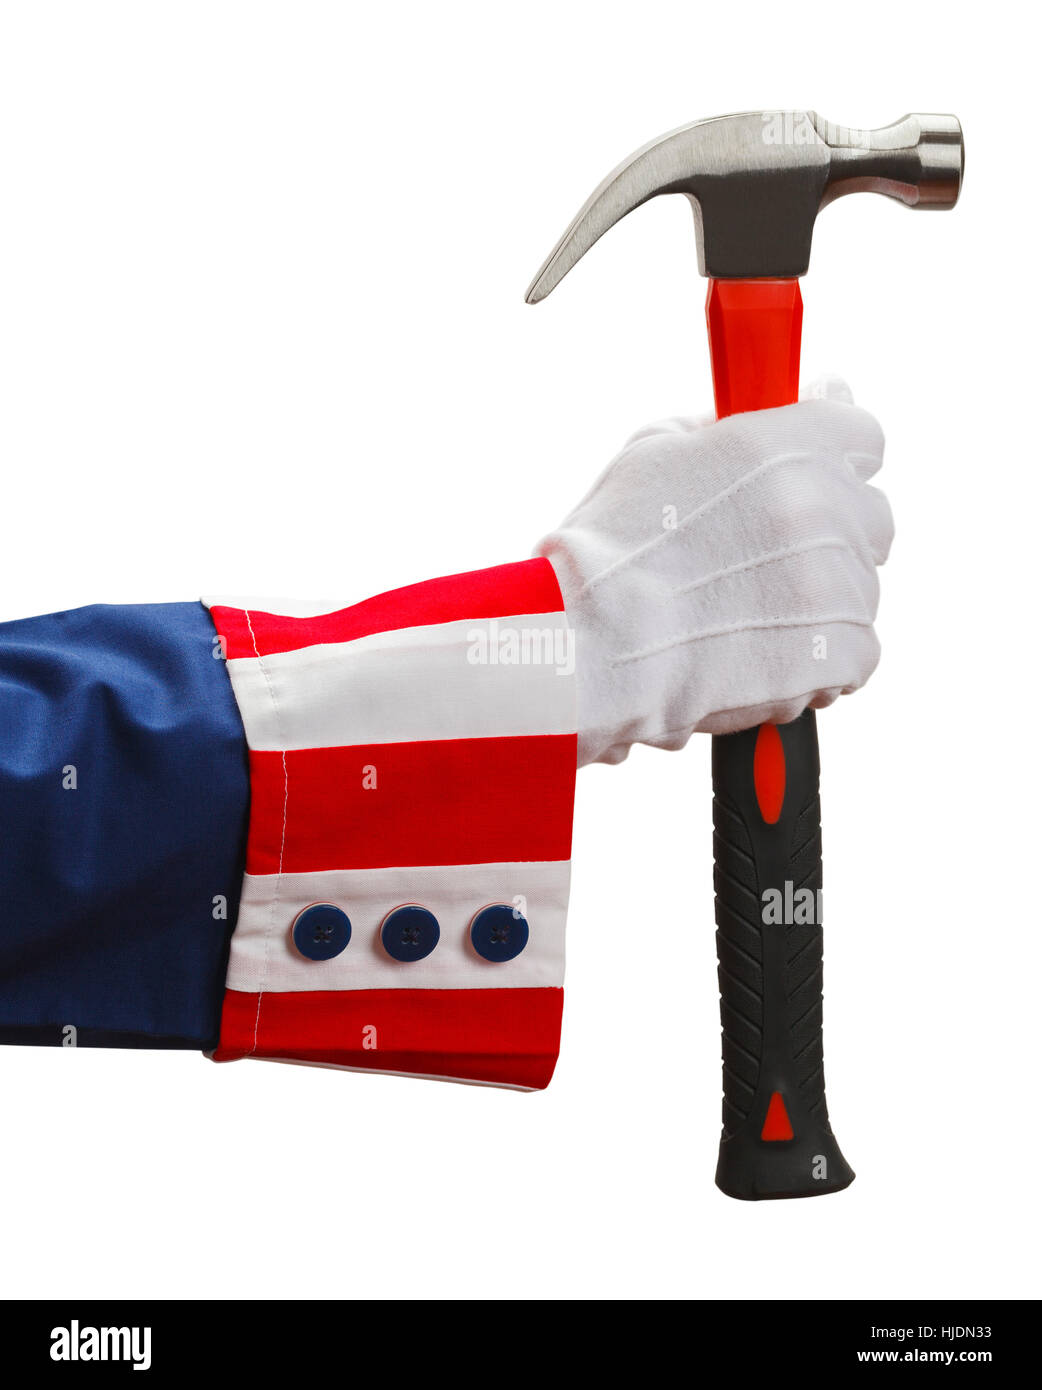 President Holding a Hammer Isolated on White Background. - Stock Image